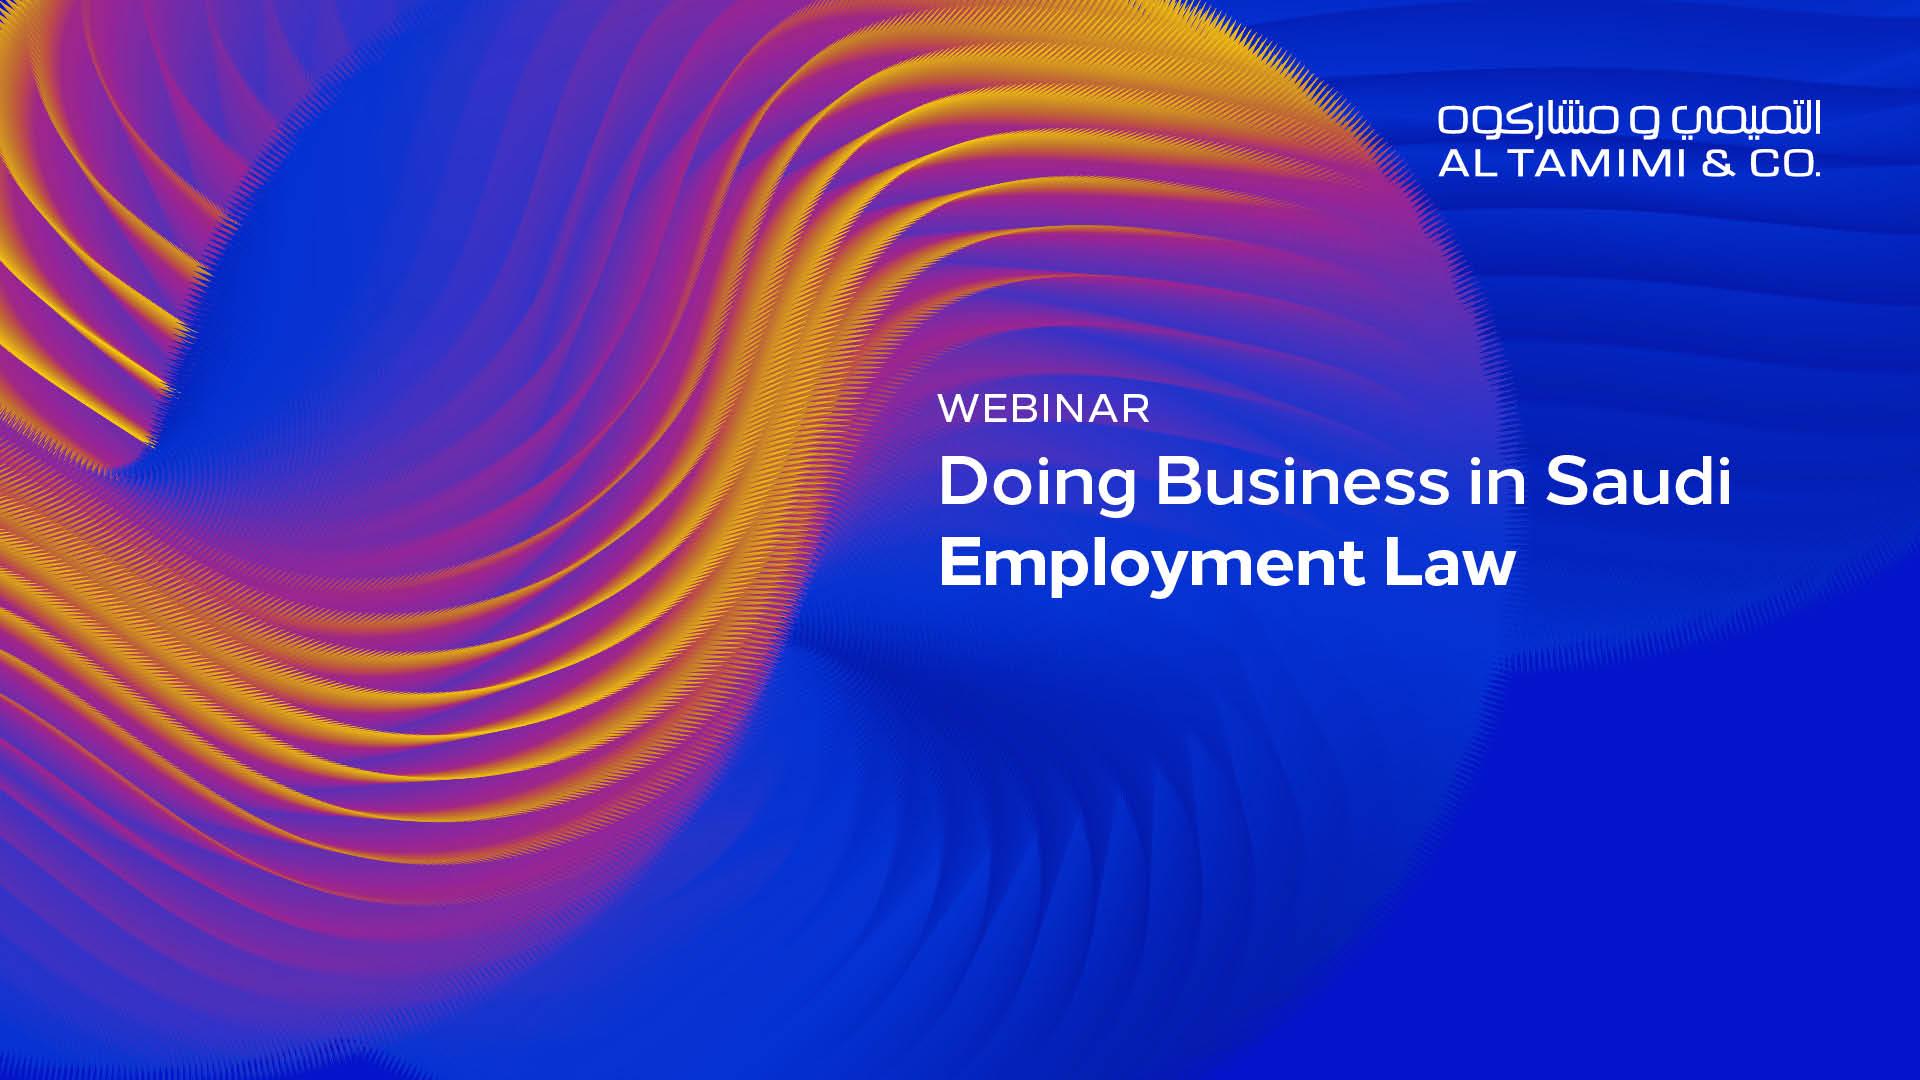 Doing Business in Saudi – Employment Law